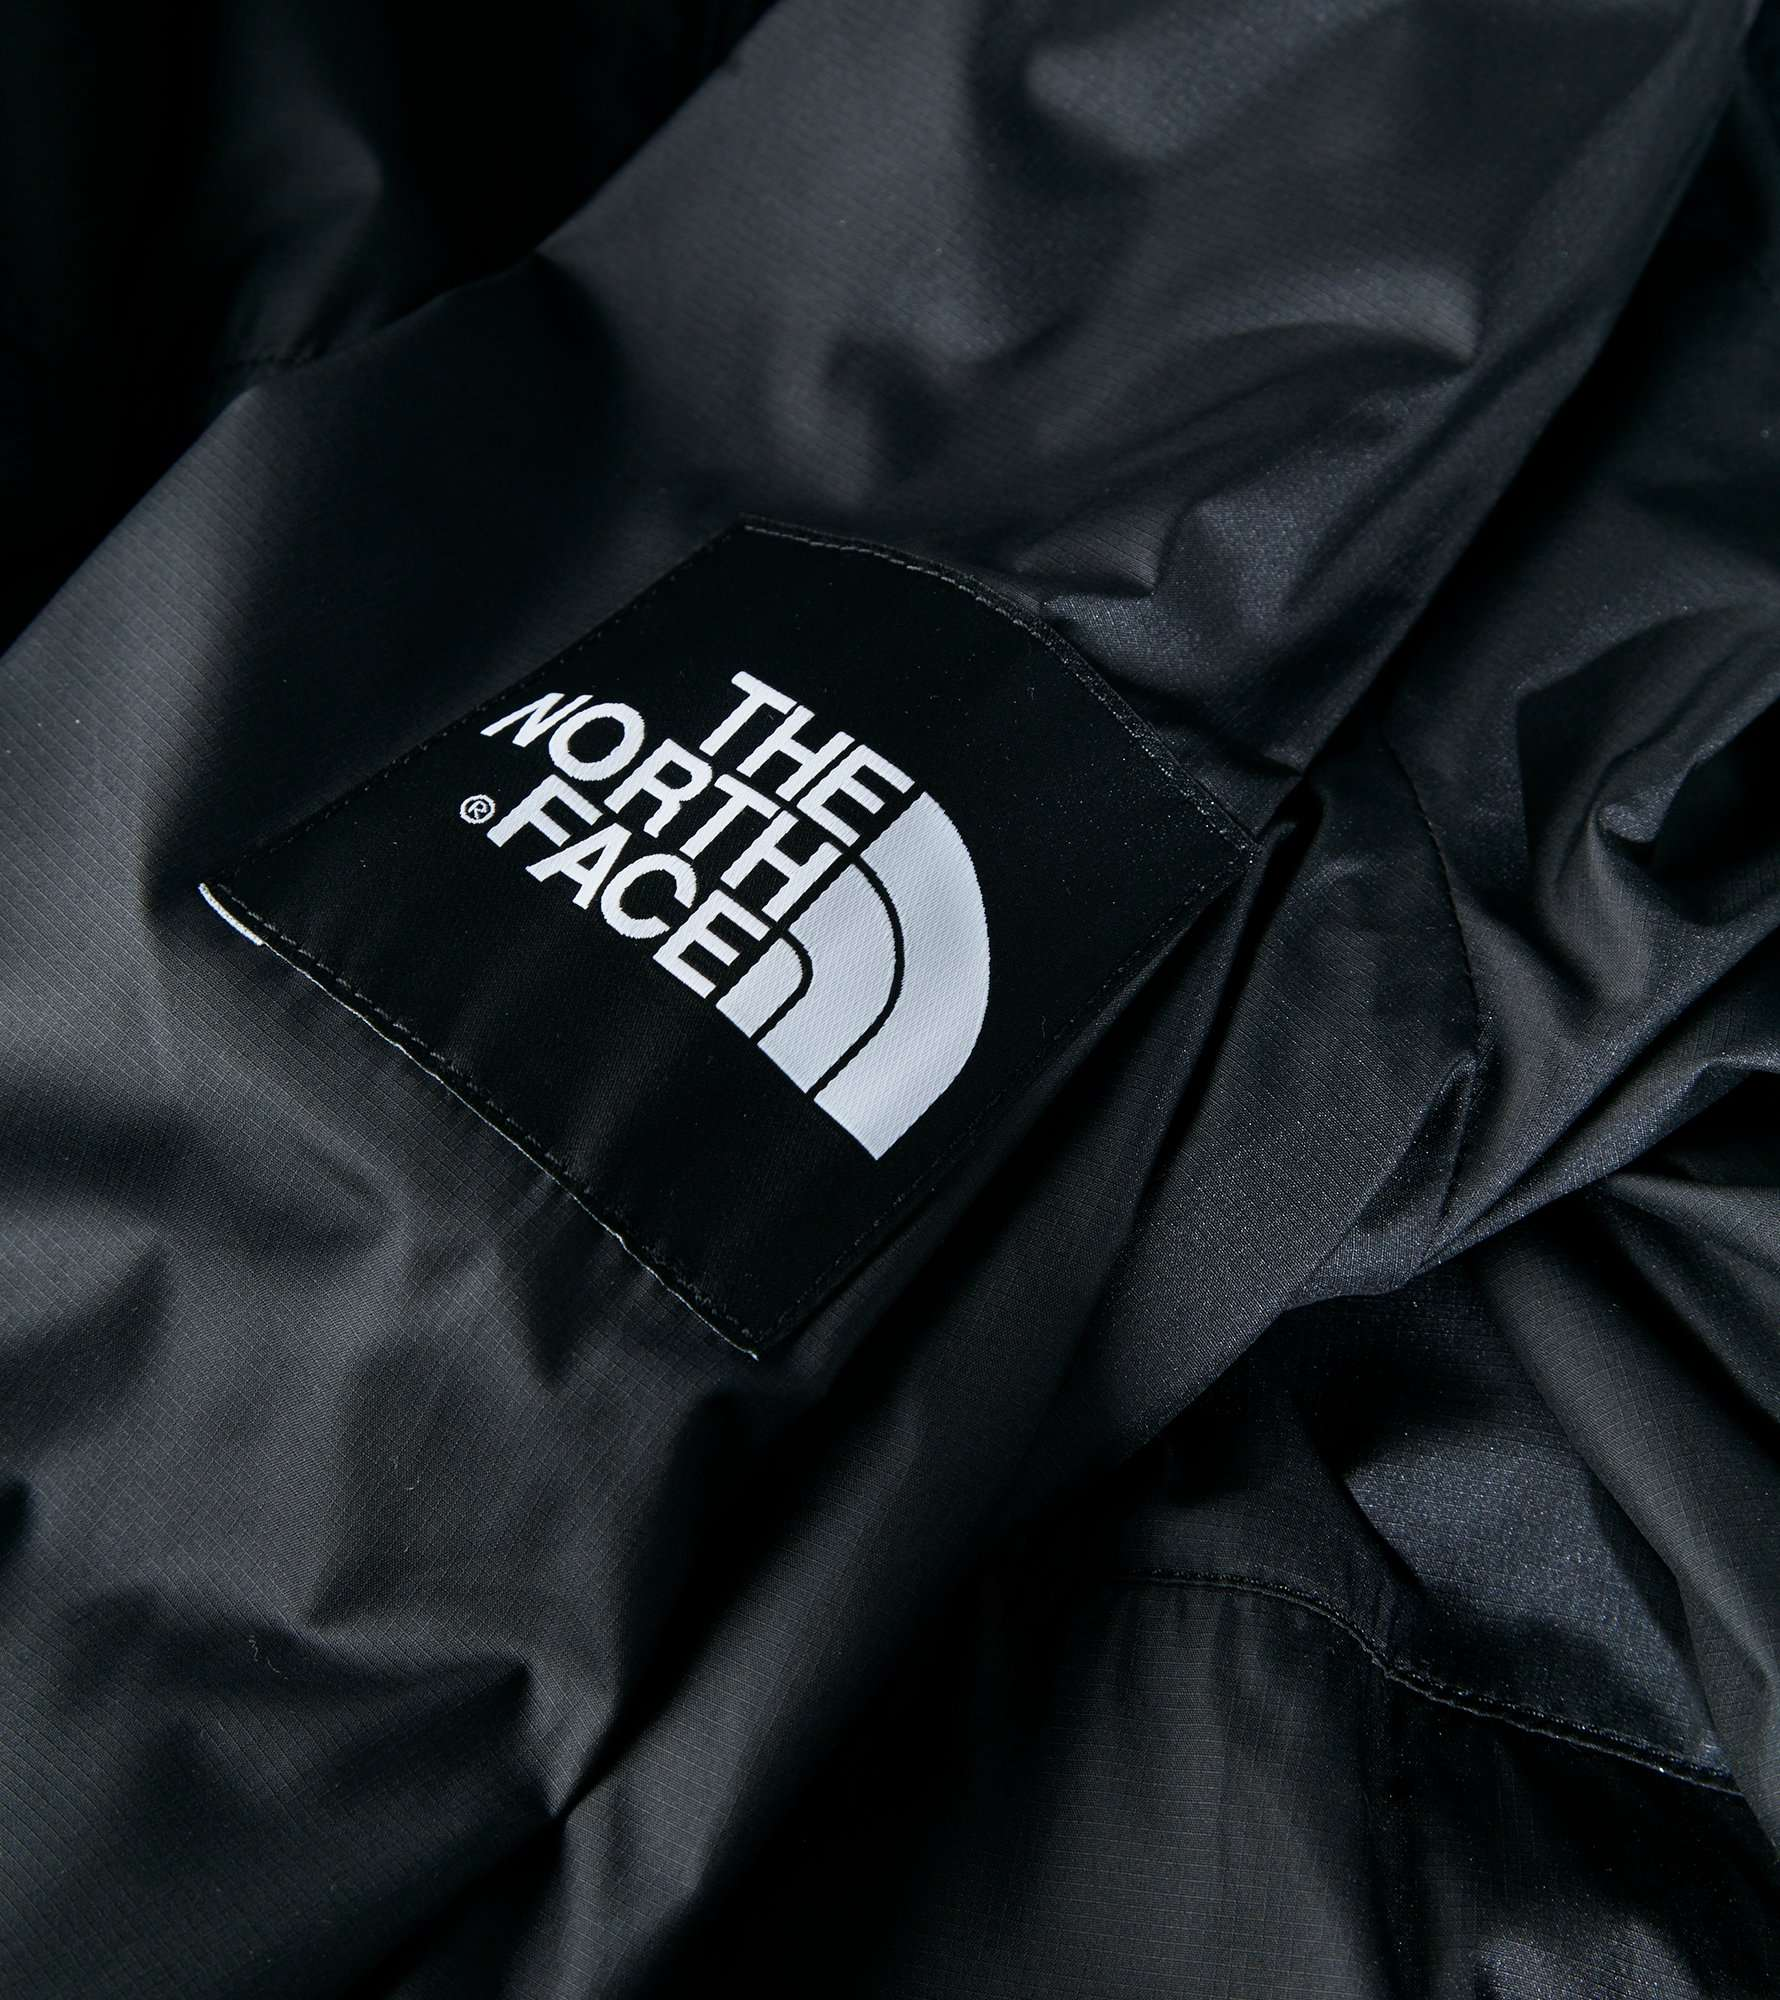 The North Face Black Label Denali Diablo Jacket